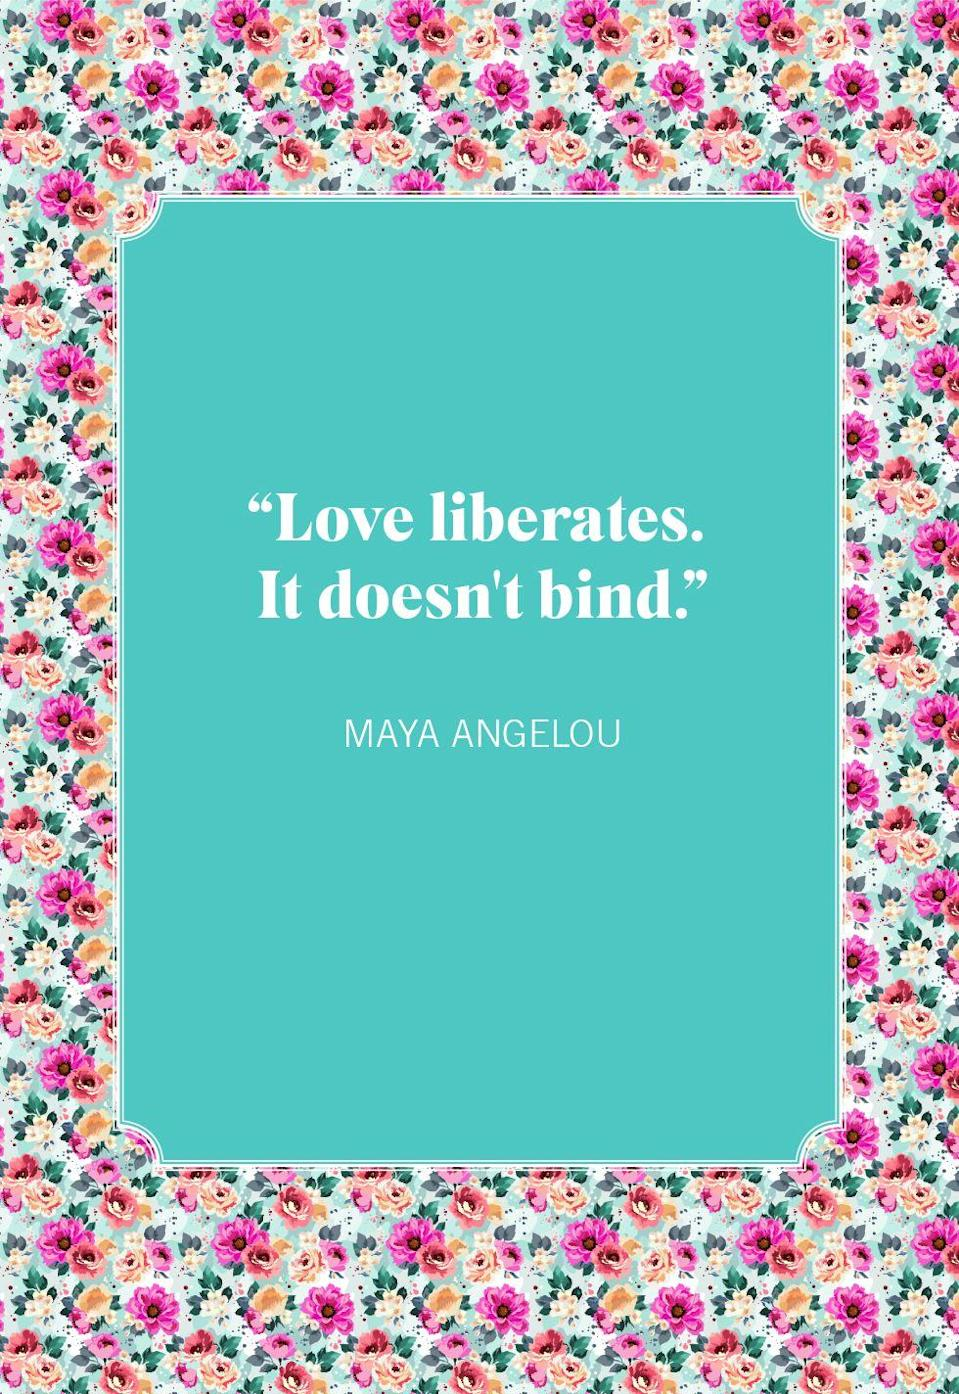 "<p>""Love liberates. It doesn't bind.""</p>"